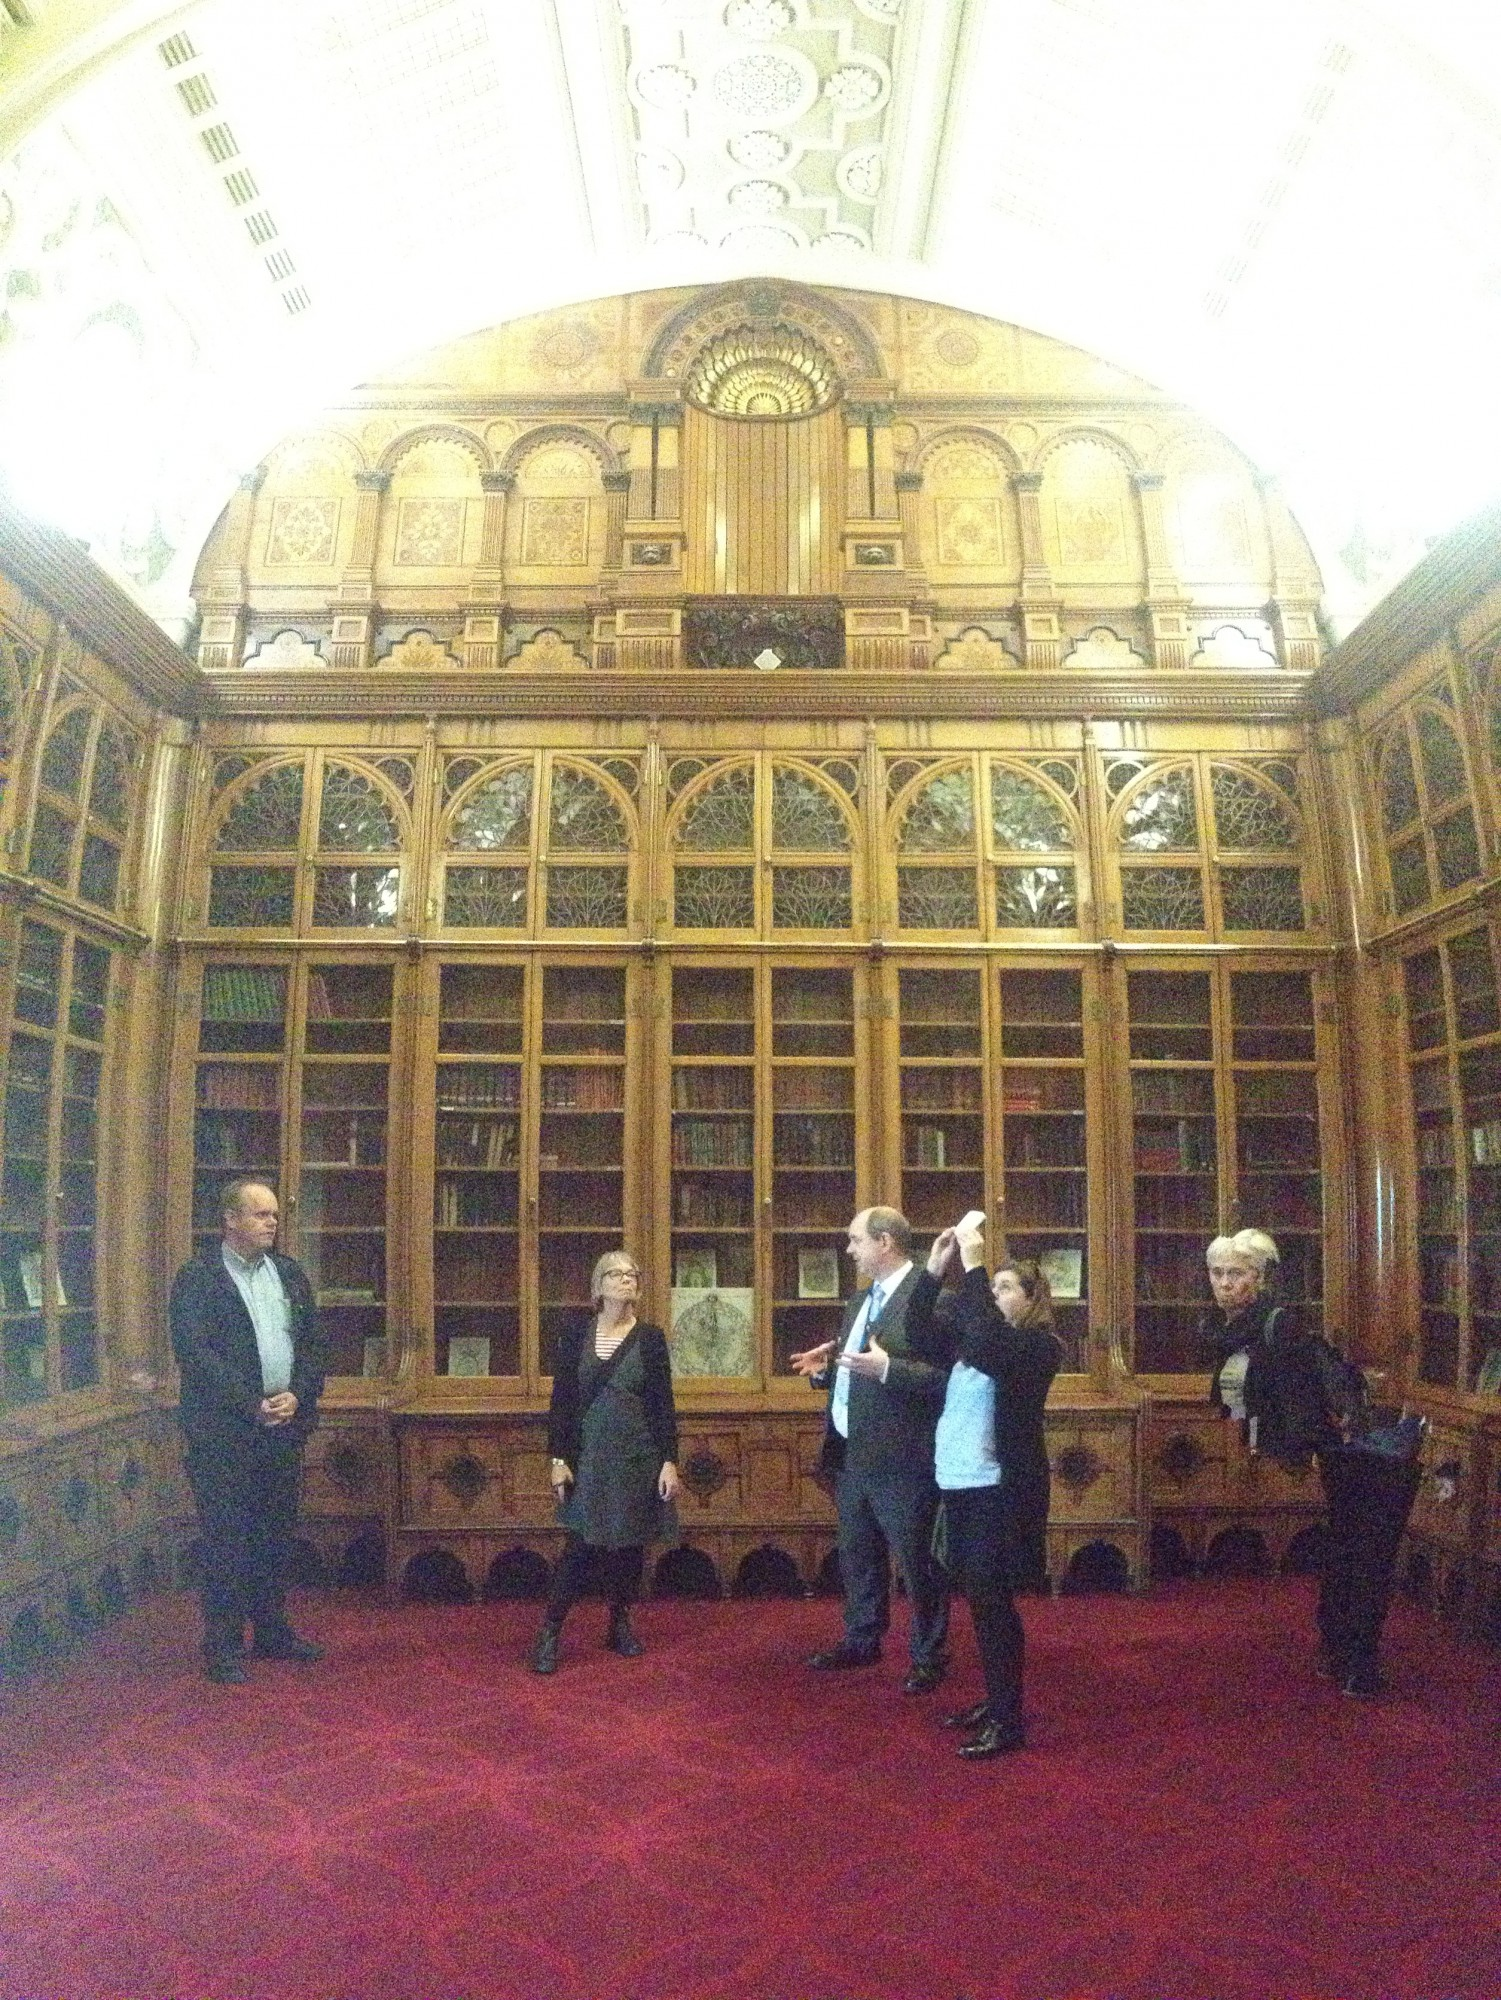 Shakespeare memorial room